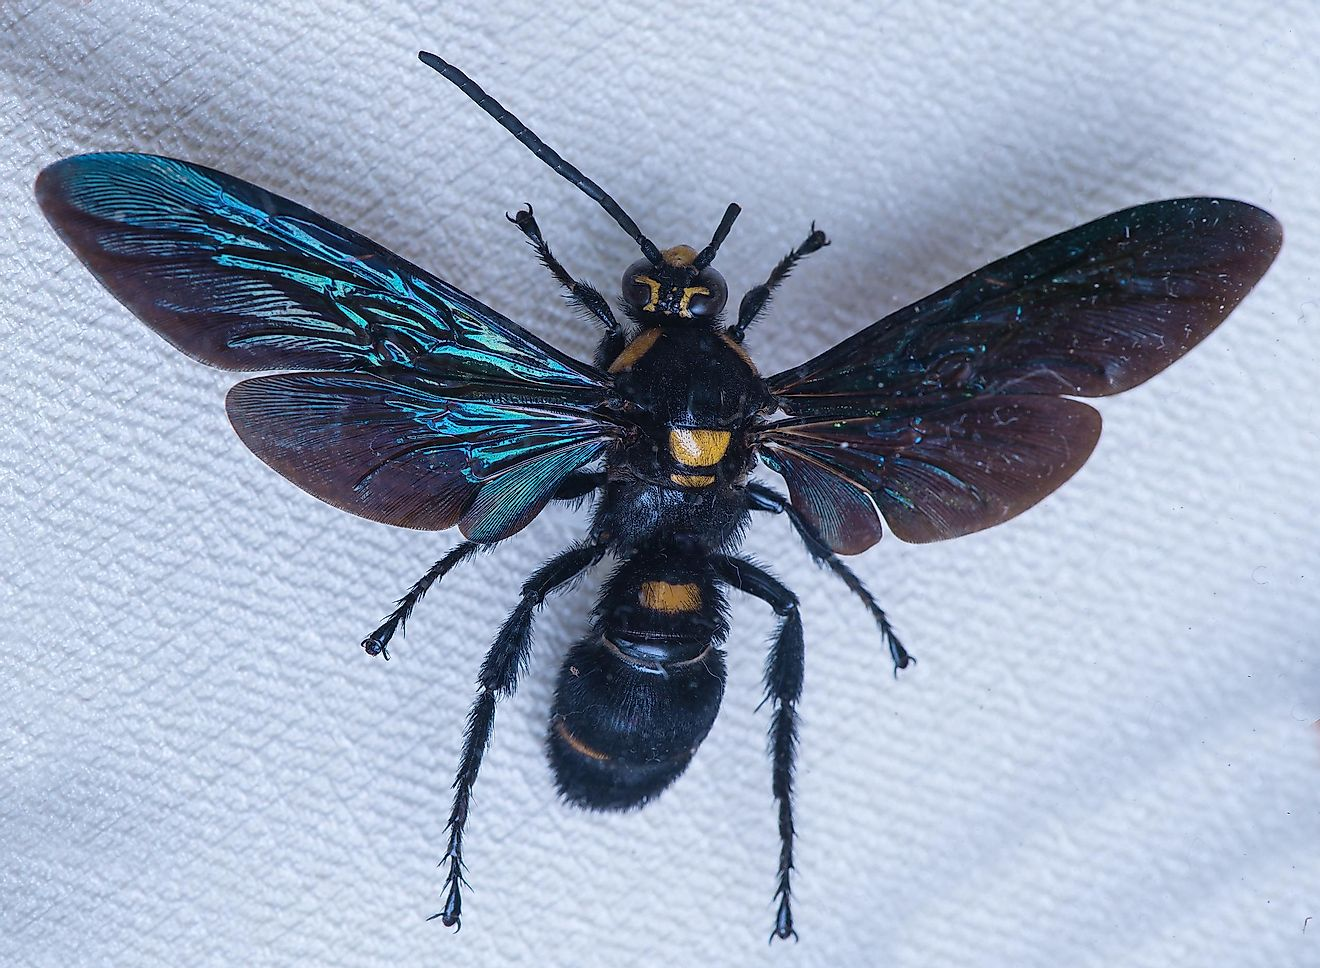 Giant Scoliid Wasps, also known as Megascolia procer, are solitary wasps that can be found around Indonesia.